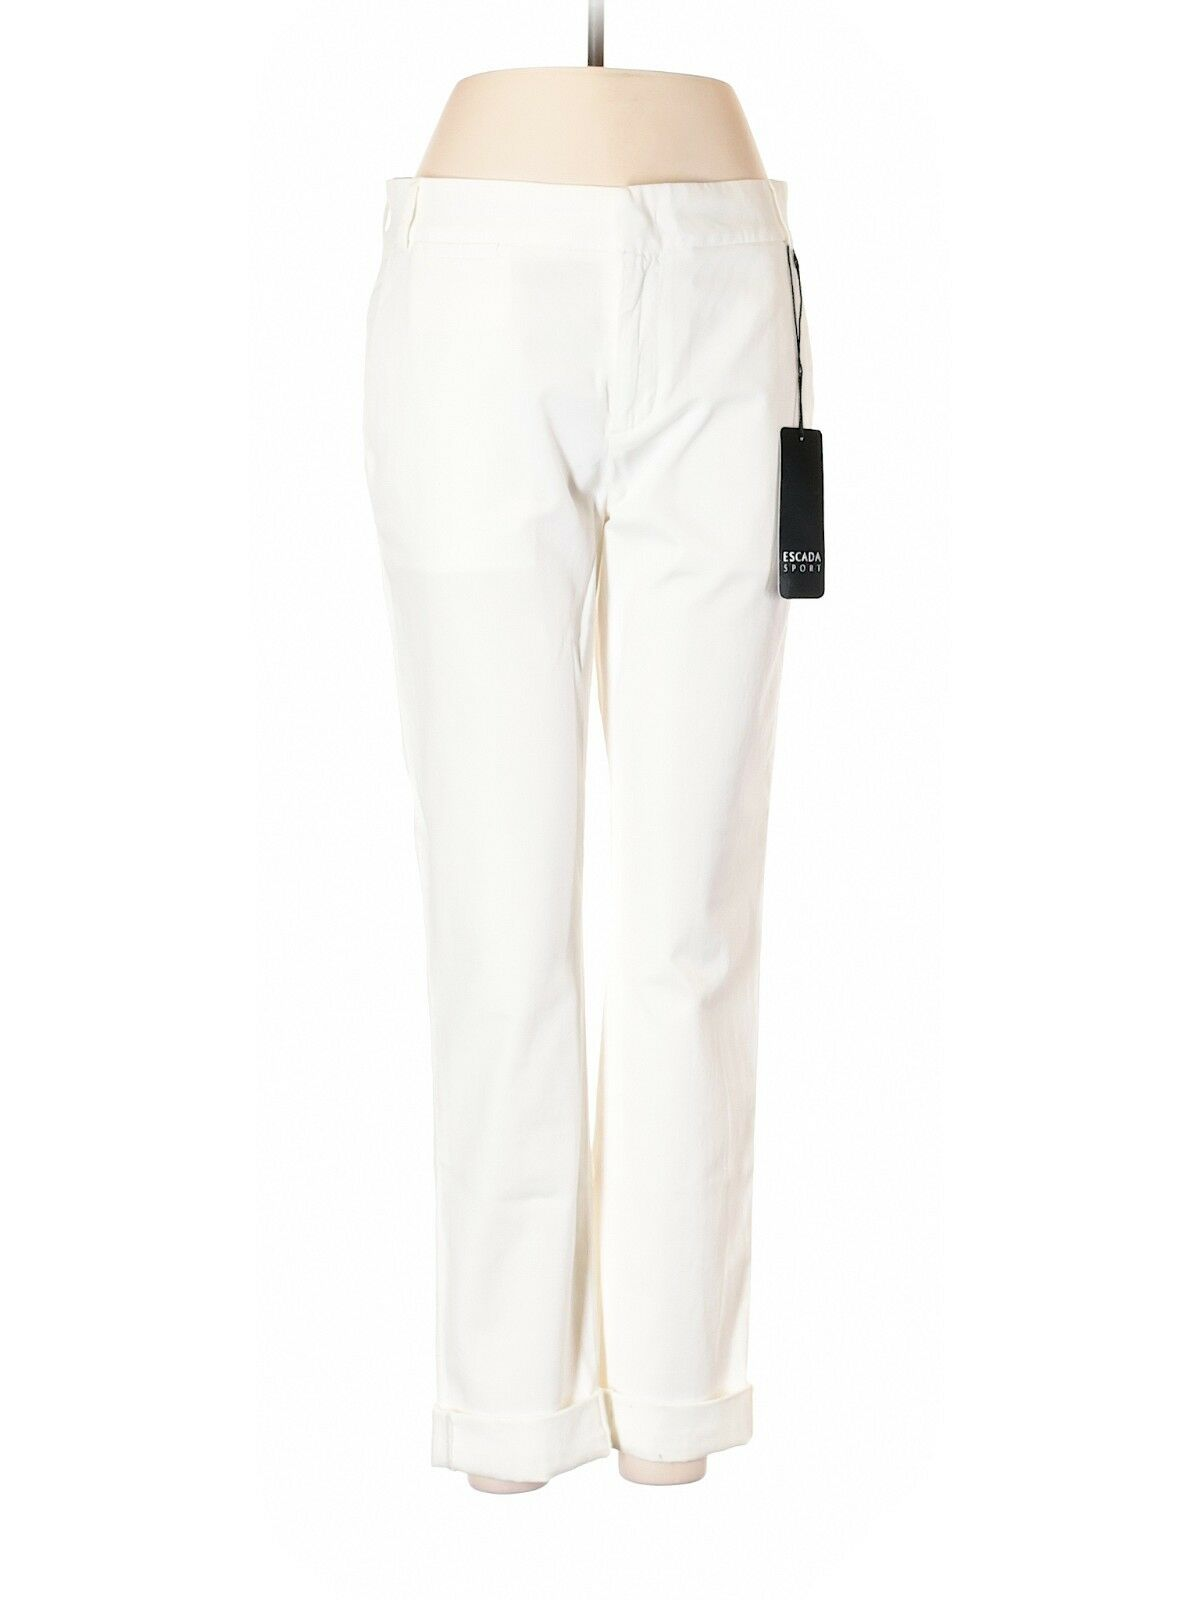 NWT Escada Sport White Cotton Blend Pants Size 34 Made in